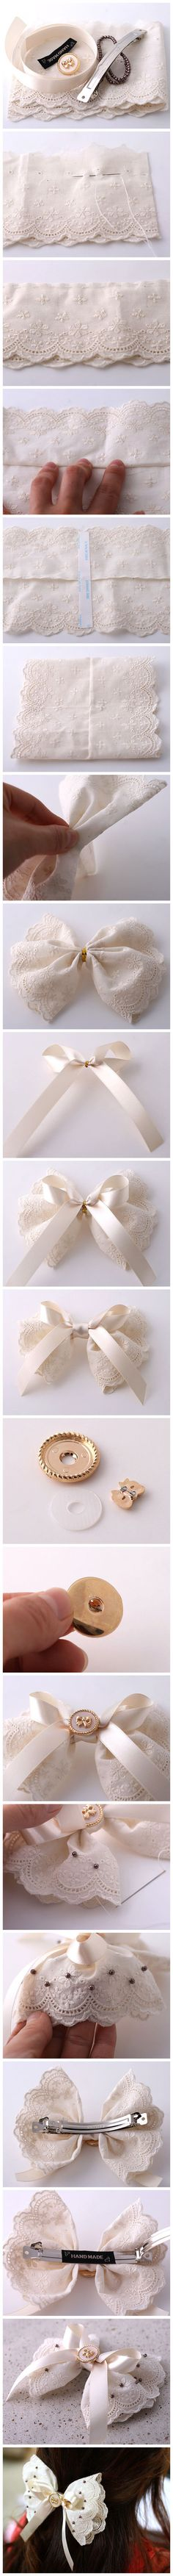 DIY Hair Bow diy accessories crafts home made easy crafts craft idea crafts ideas diy ideas diy crafts diy idea do it yourself diy projects diy craft handmade diy fashion